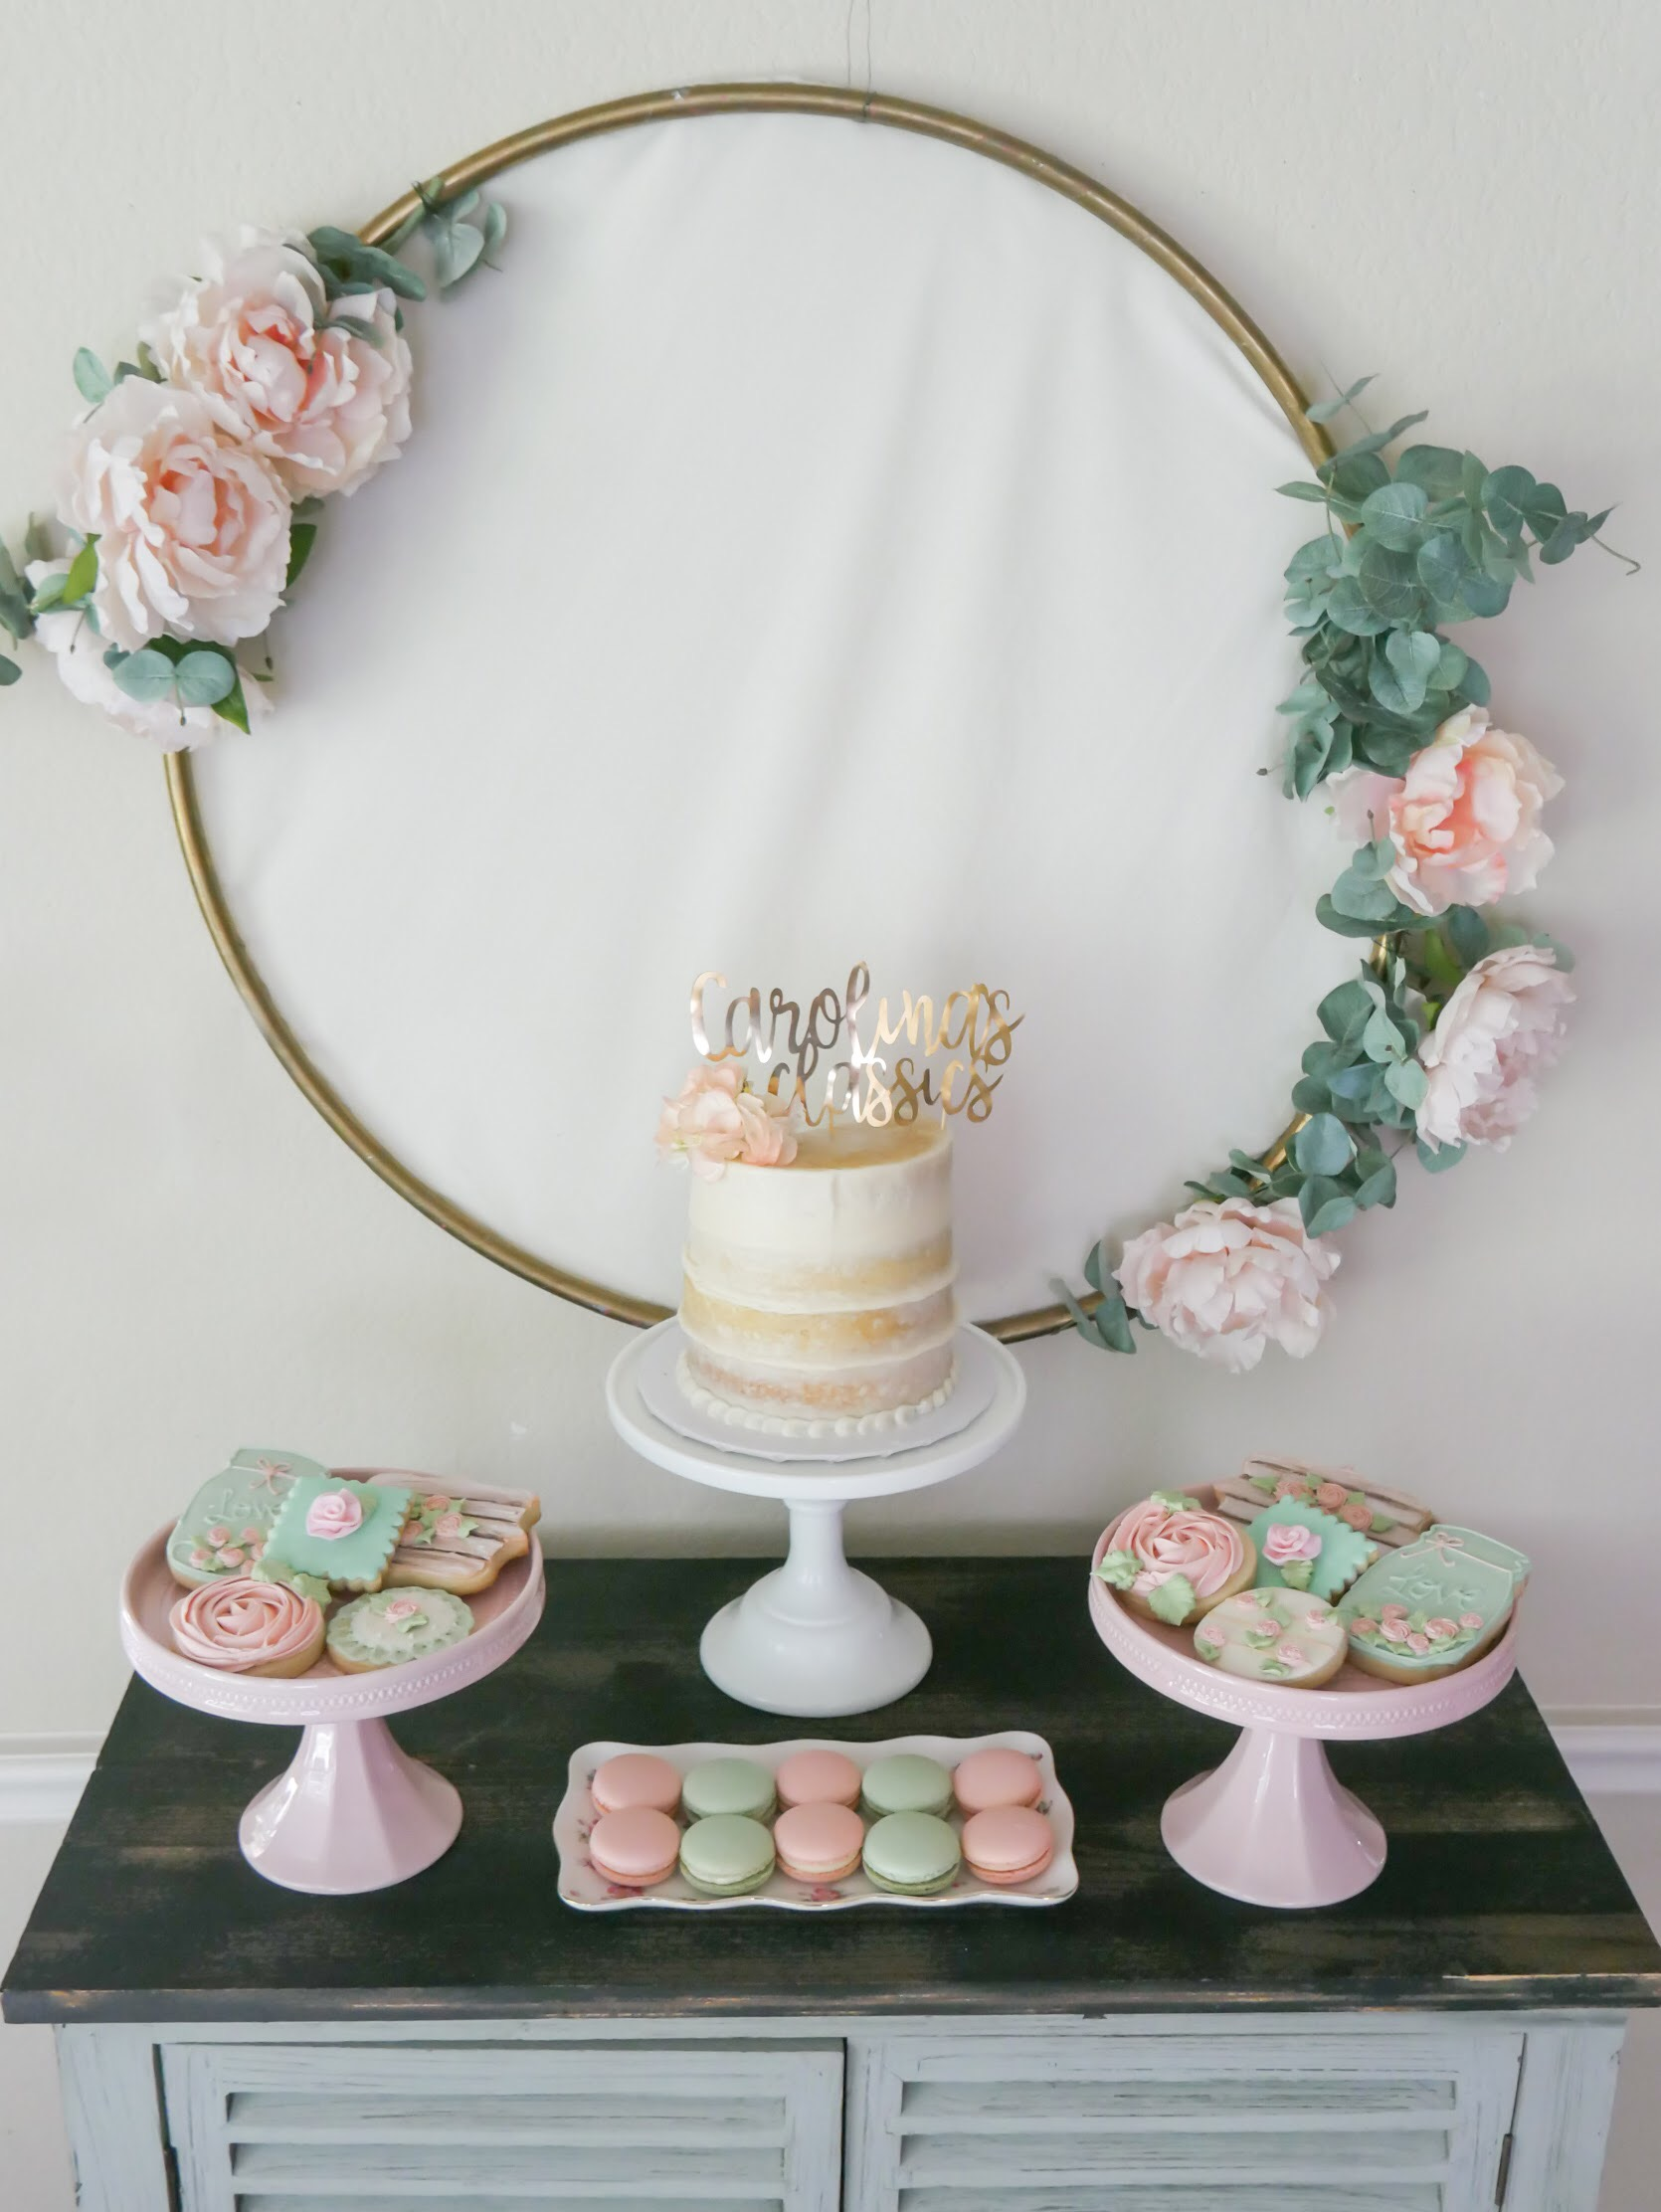 Create a quick and easy backdrop for your dessert table with a gold hoop that you add florals to. See all the garden party ideas from Mint Event Design www.minteventdesign.com #dessertparty #partytips #partyplanning #partyideas #diyparty #desserttable